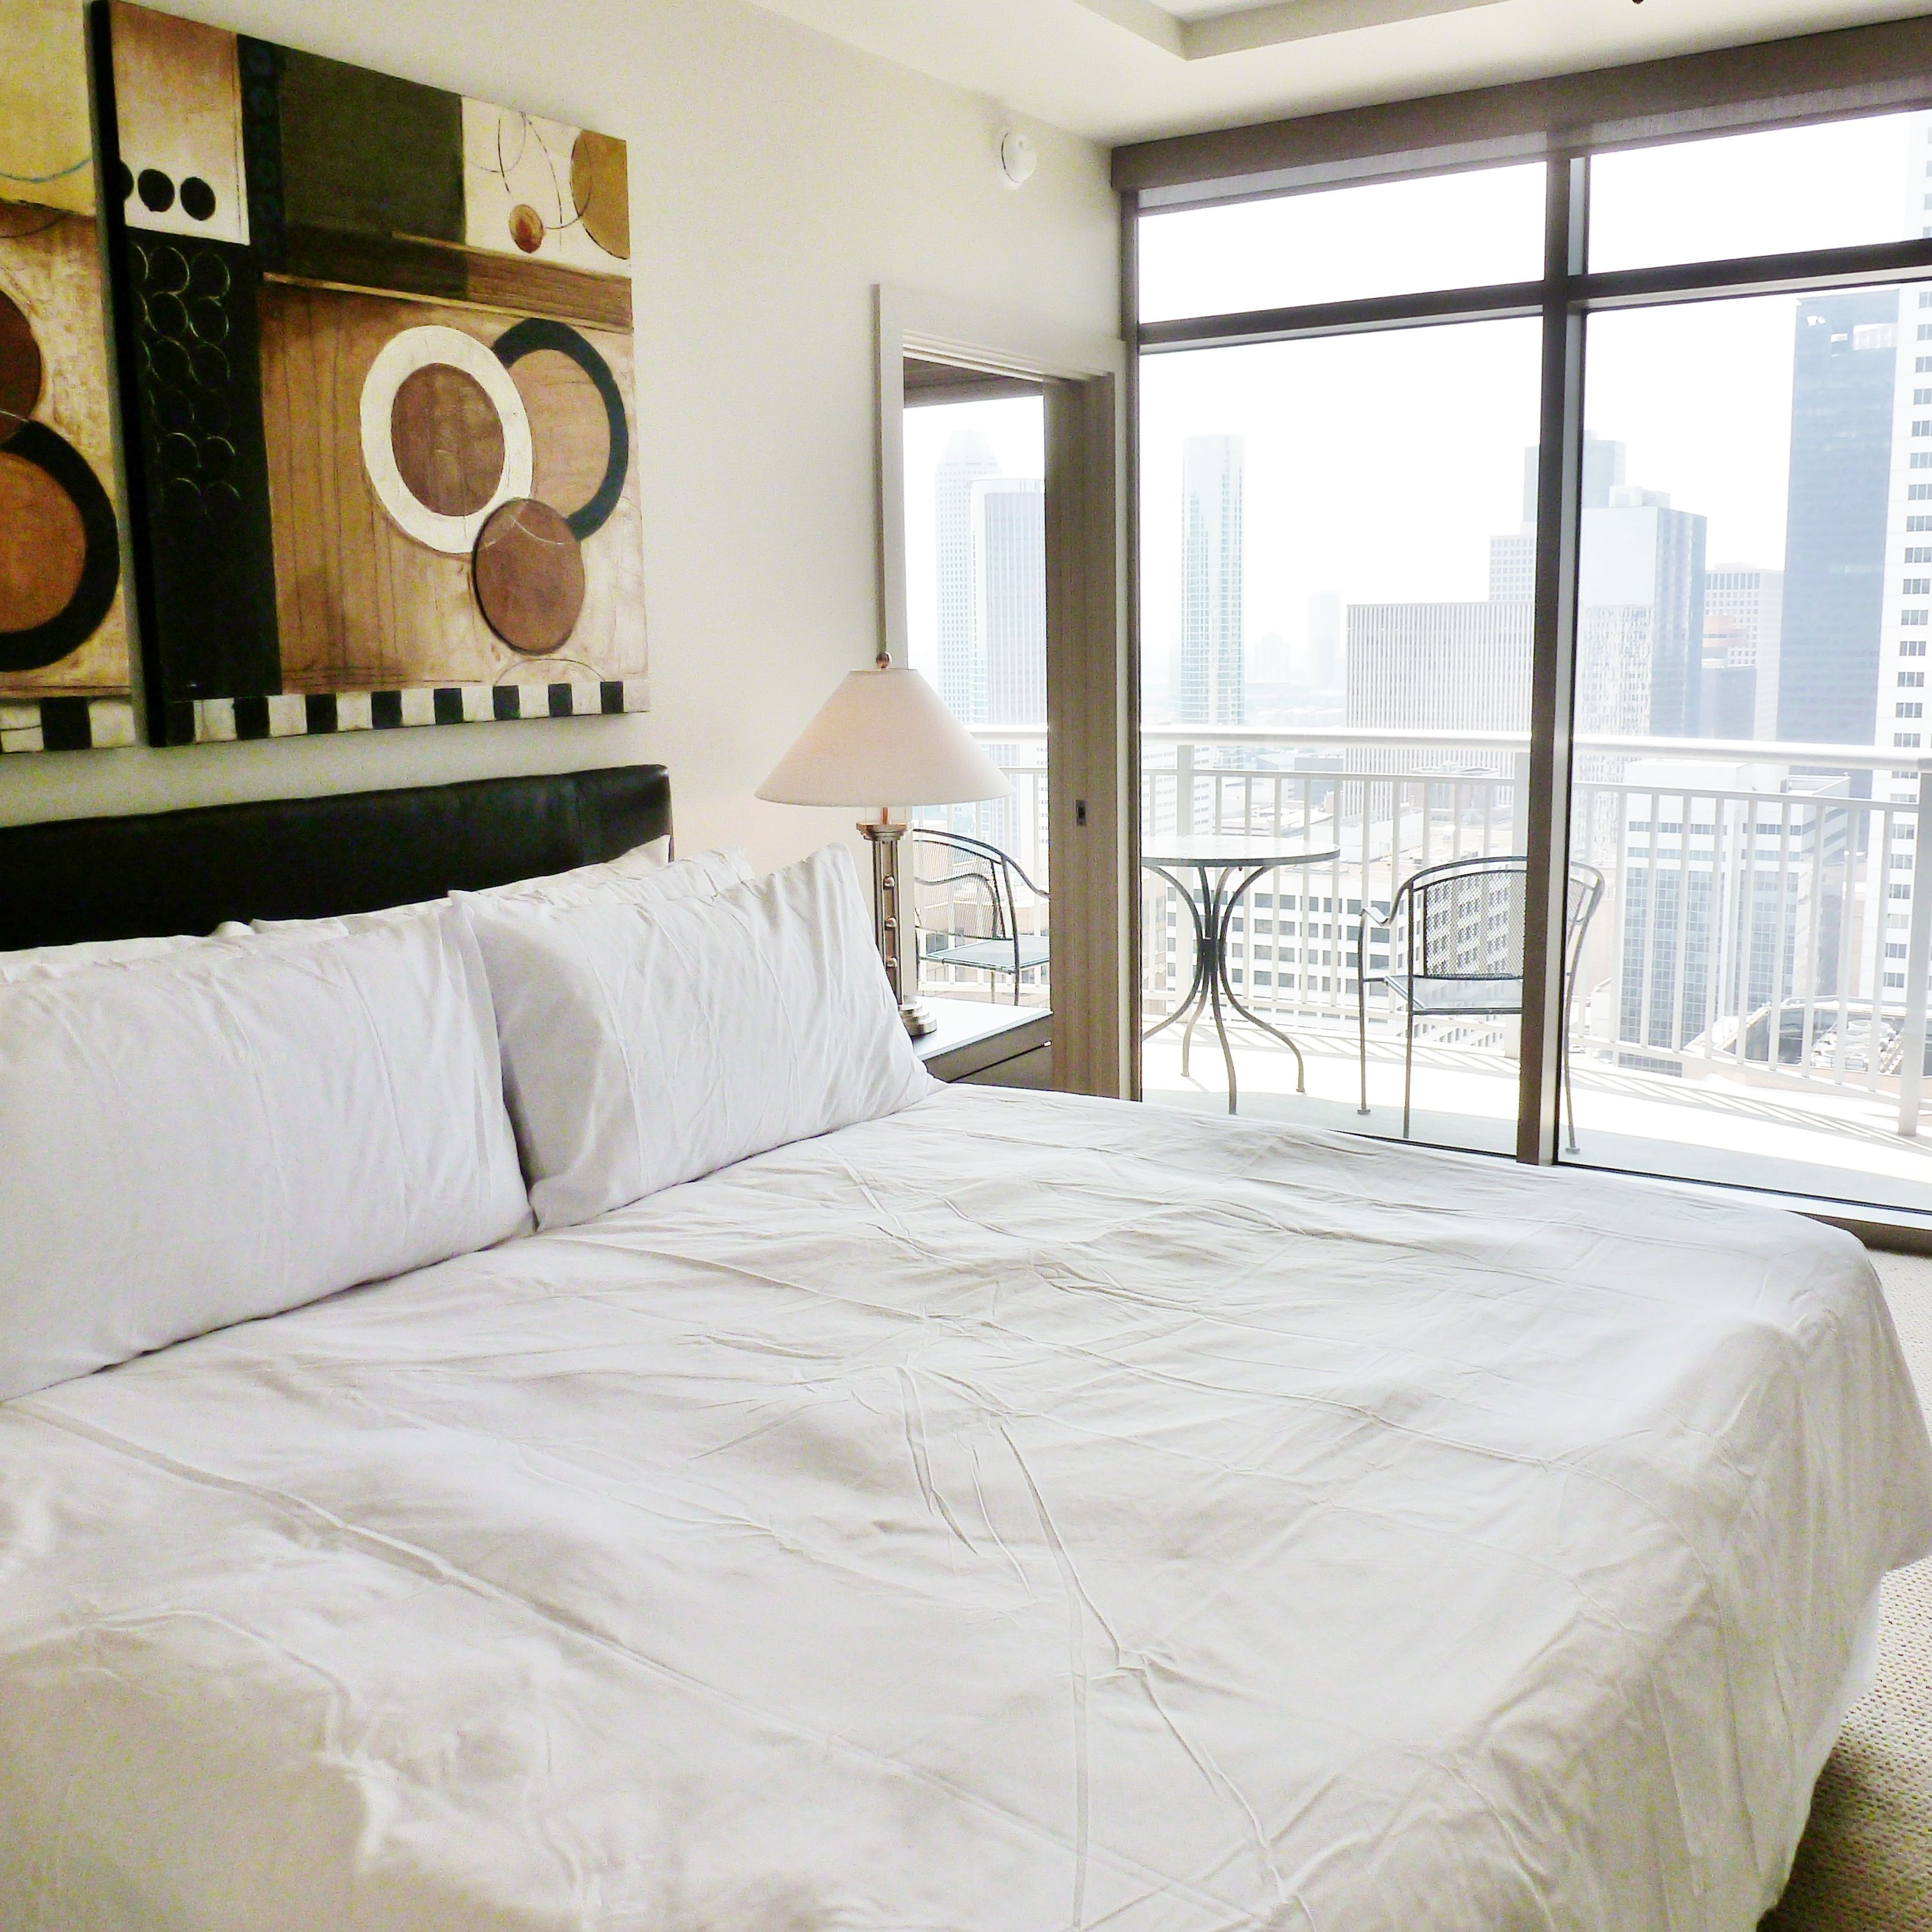 One Park Place in Houston, TX has fully furnished